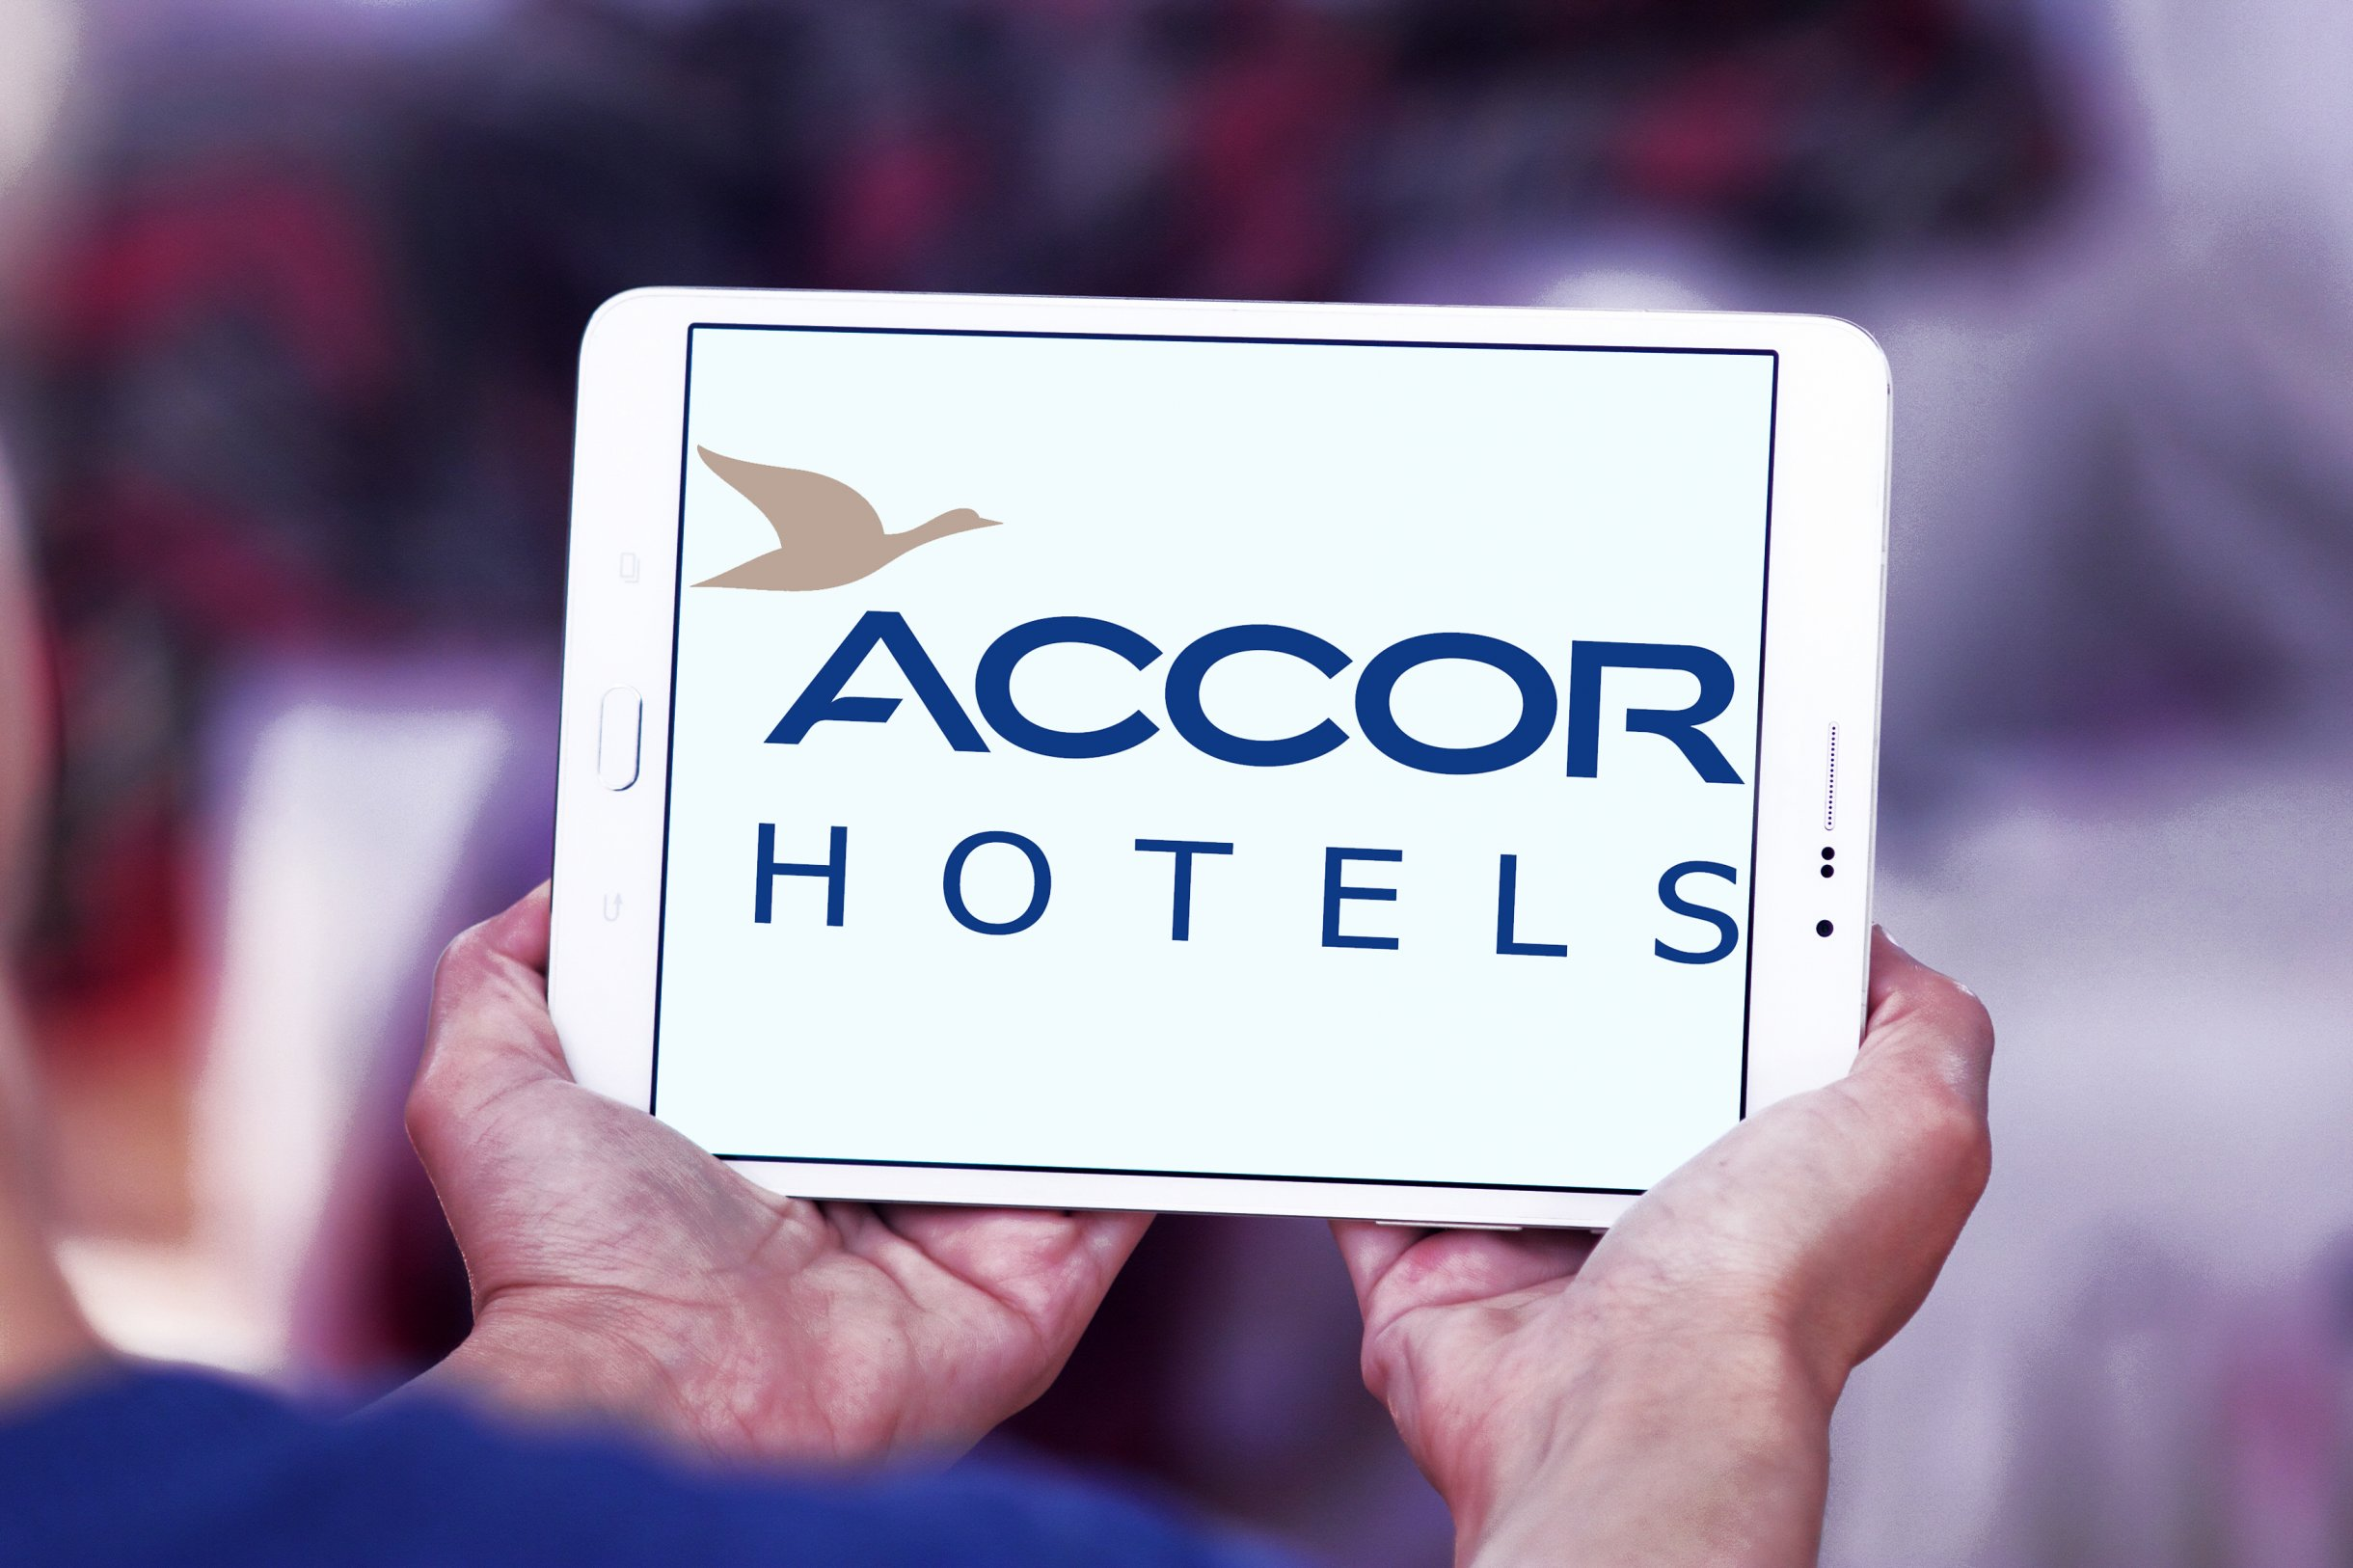 AccorHotels: From hotelier to digital marketplace